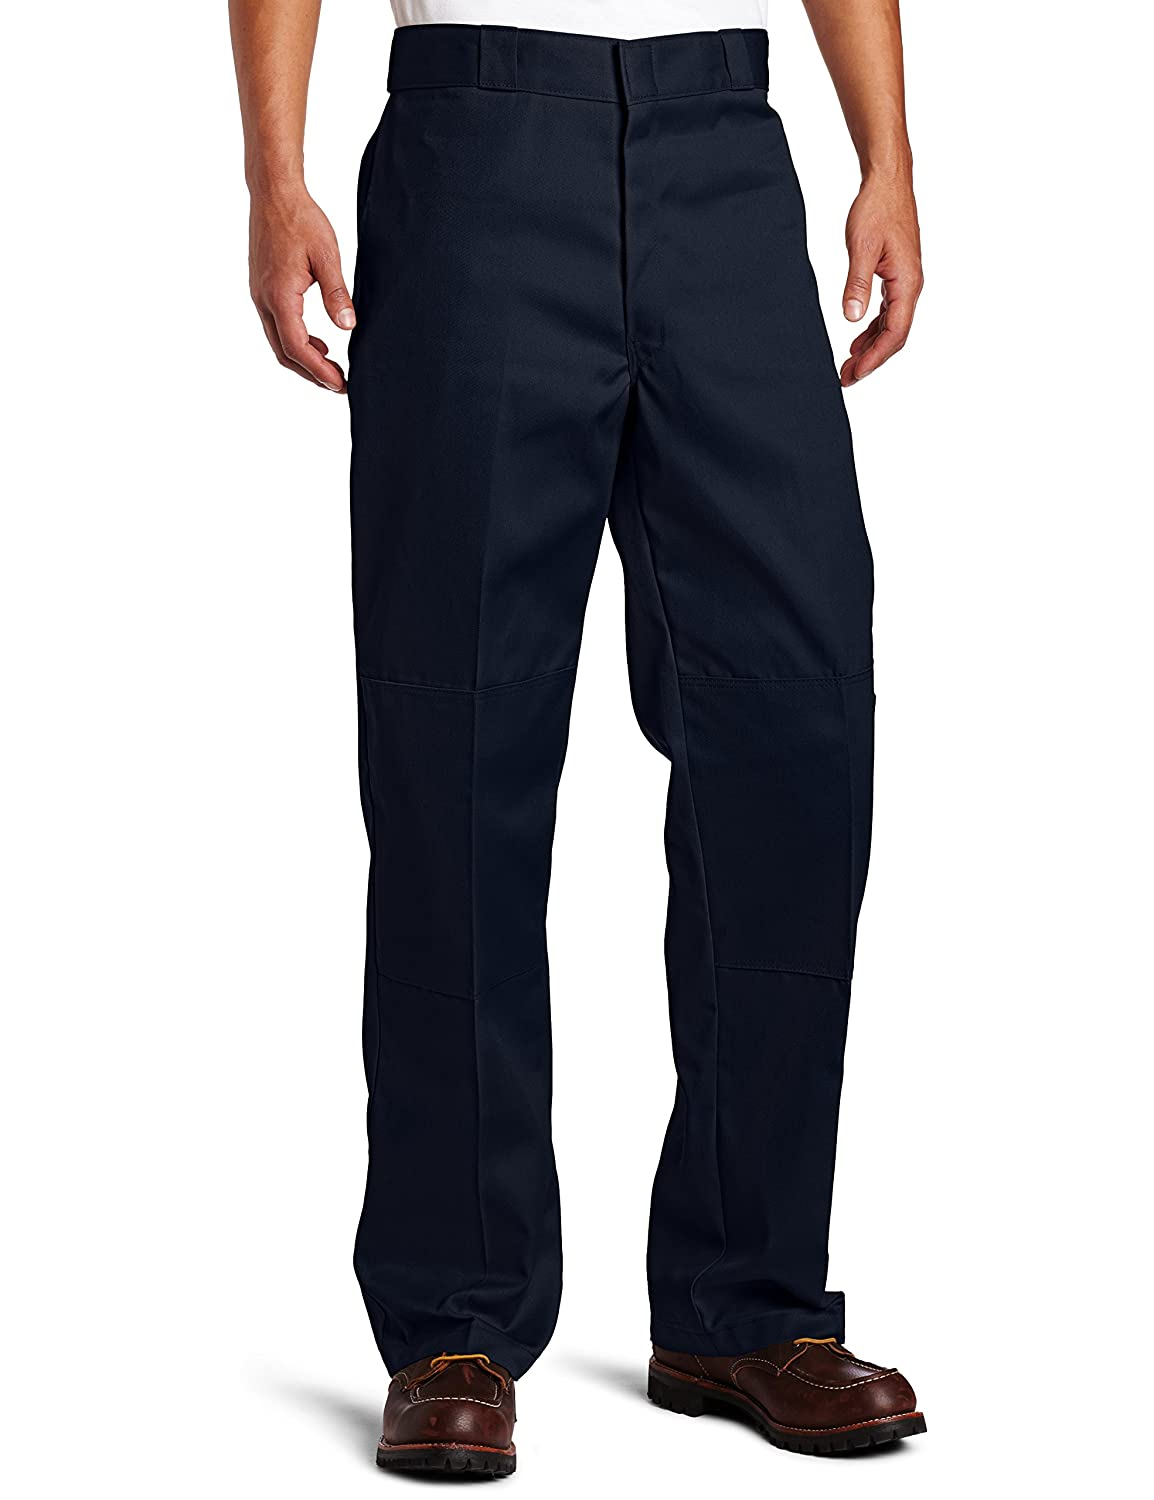 Bleu (Dark Navy) 32W   30L Dickies Double Knee Work Pantalon Homme